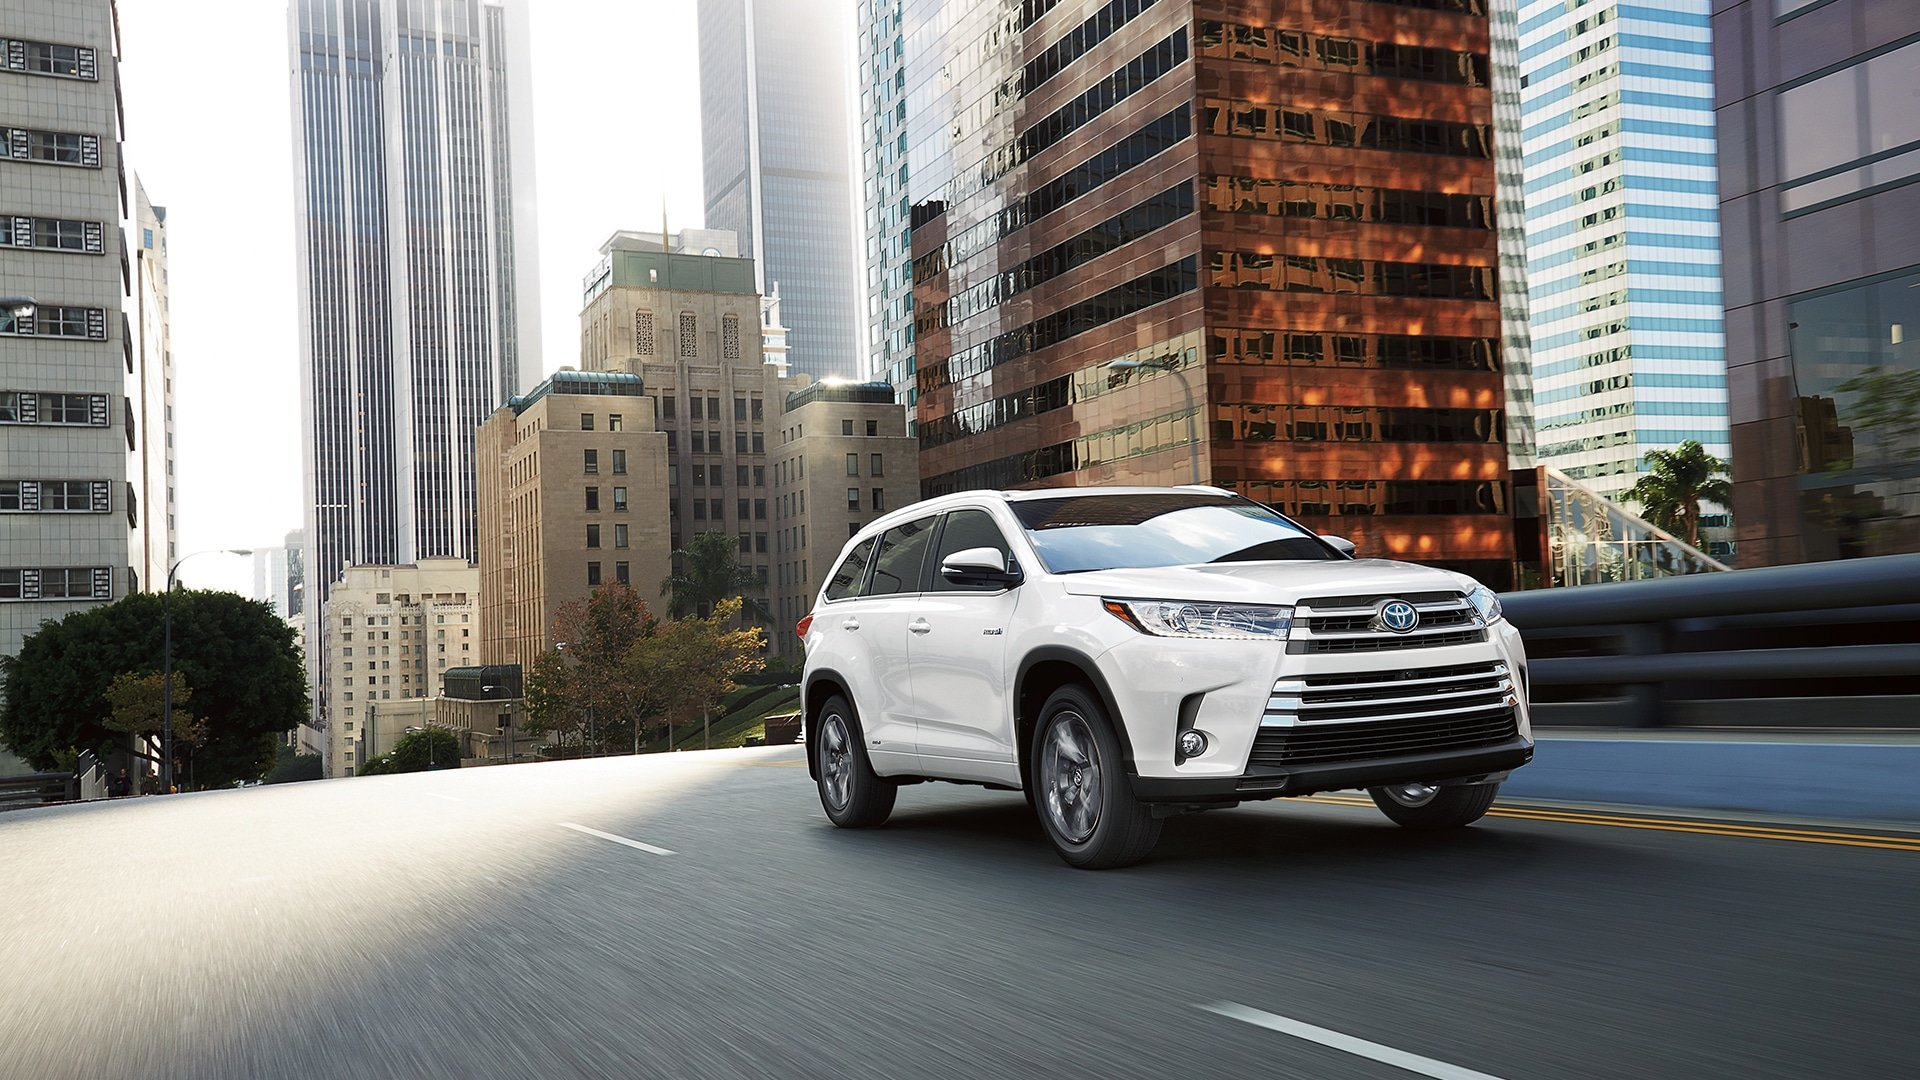 Toyota Highlander Lease Deals & Specials Greensburg PA